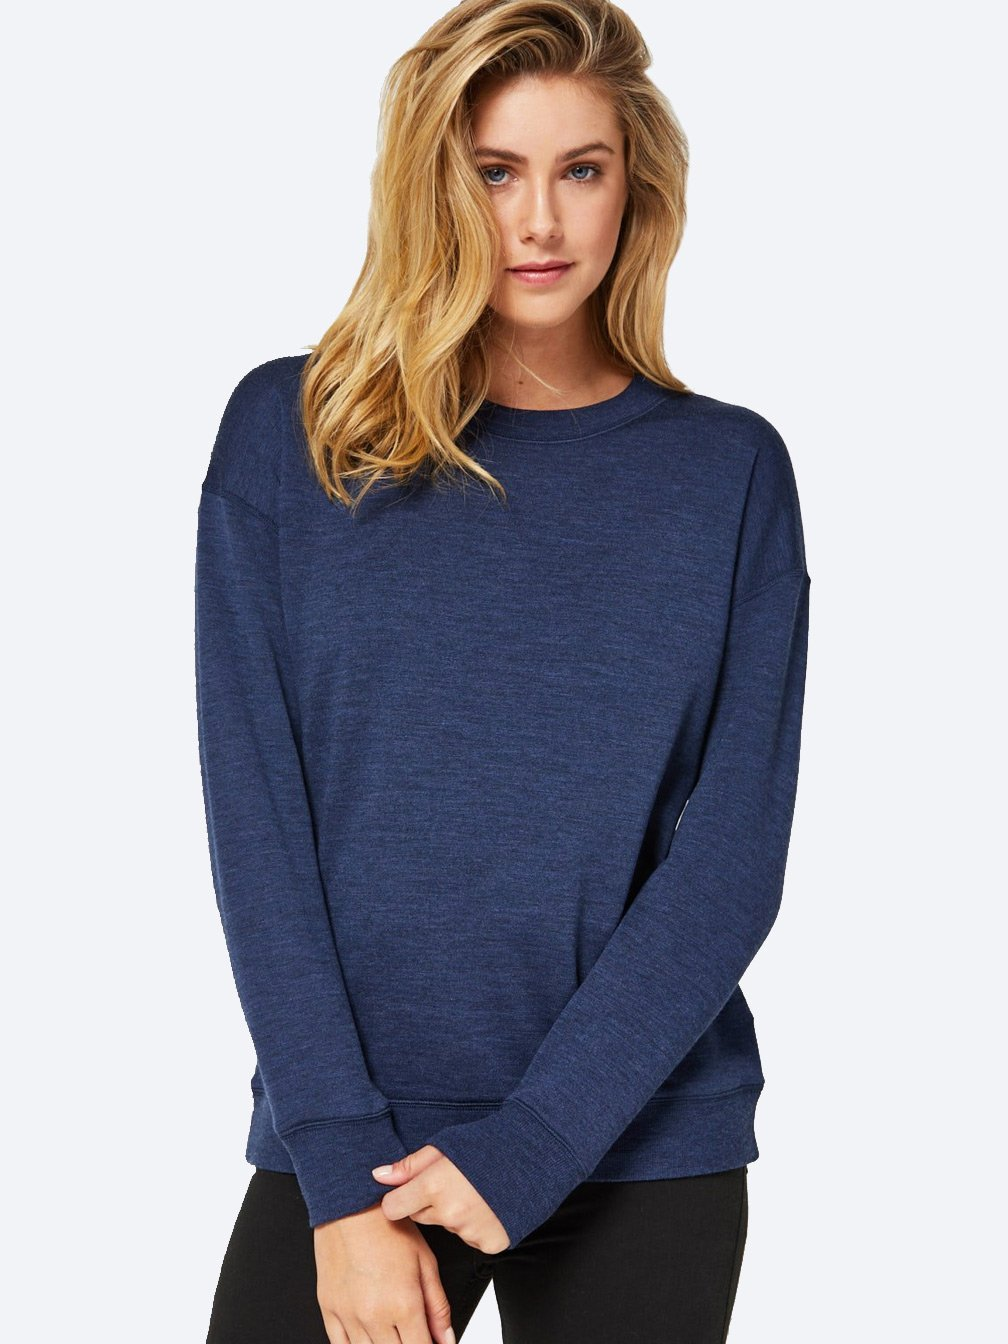 TOORALLIE KIAMA MERINO FLEECE SWEATER